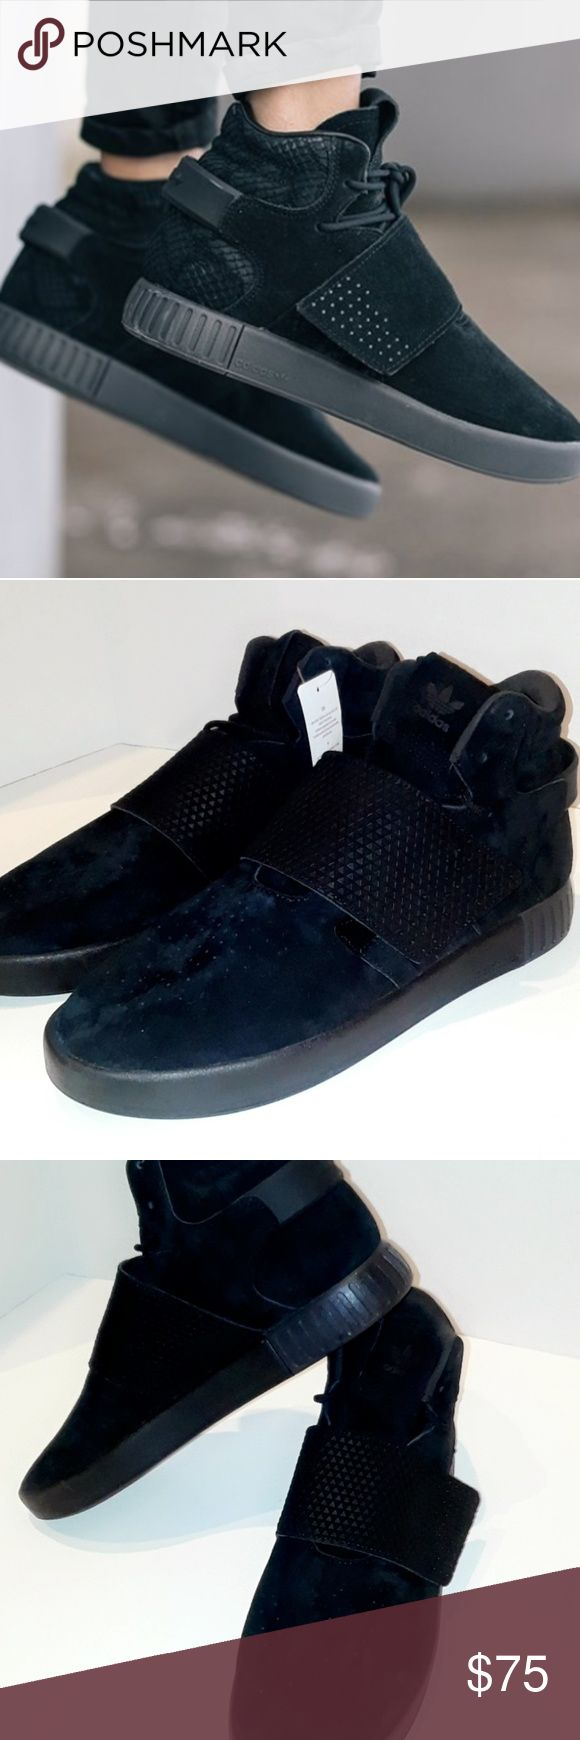 Adidas tubular invader strap all black sneakers These sneakers are new with tags (NO box)! They have never been worn. ❤all black ❤size 11.5 ❤NEW ❤Laces and front velcro strap ❤high top  ❤114955161    (there is a small silver pen mark smear on the bottom of the right shoe from a pen price marker, barely noticeable.) adidas Shoes Sneakers